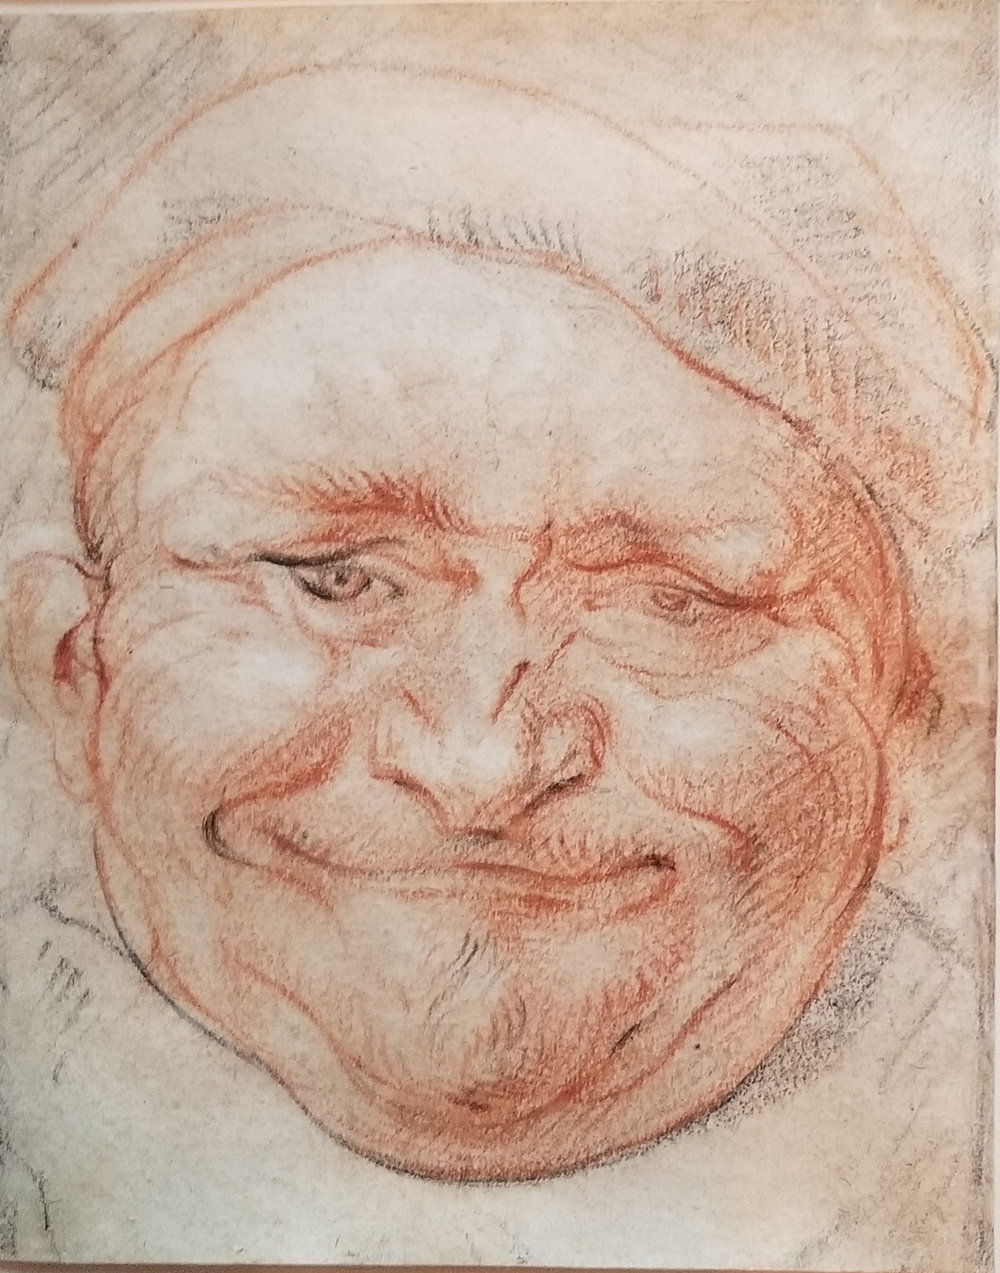 Jacob Jordaens  (b. 1593)  Democritus  5.6 x 4.4 in. colored chalk on paper